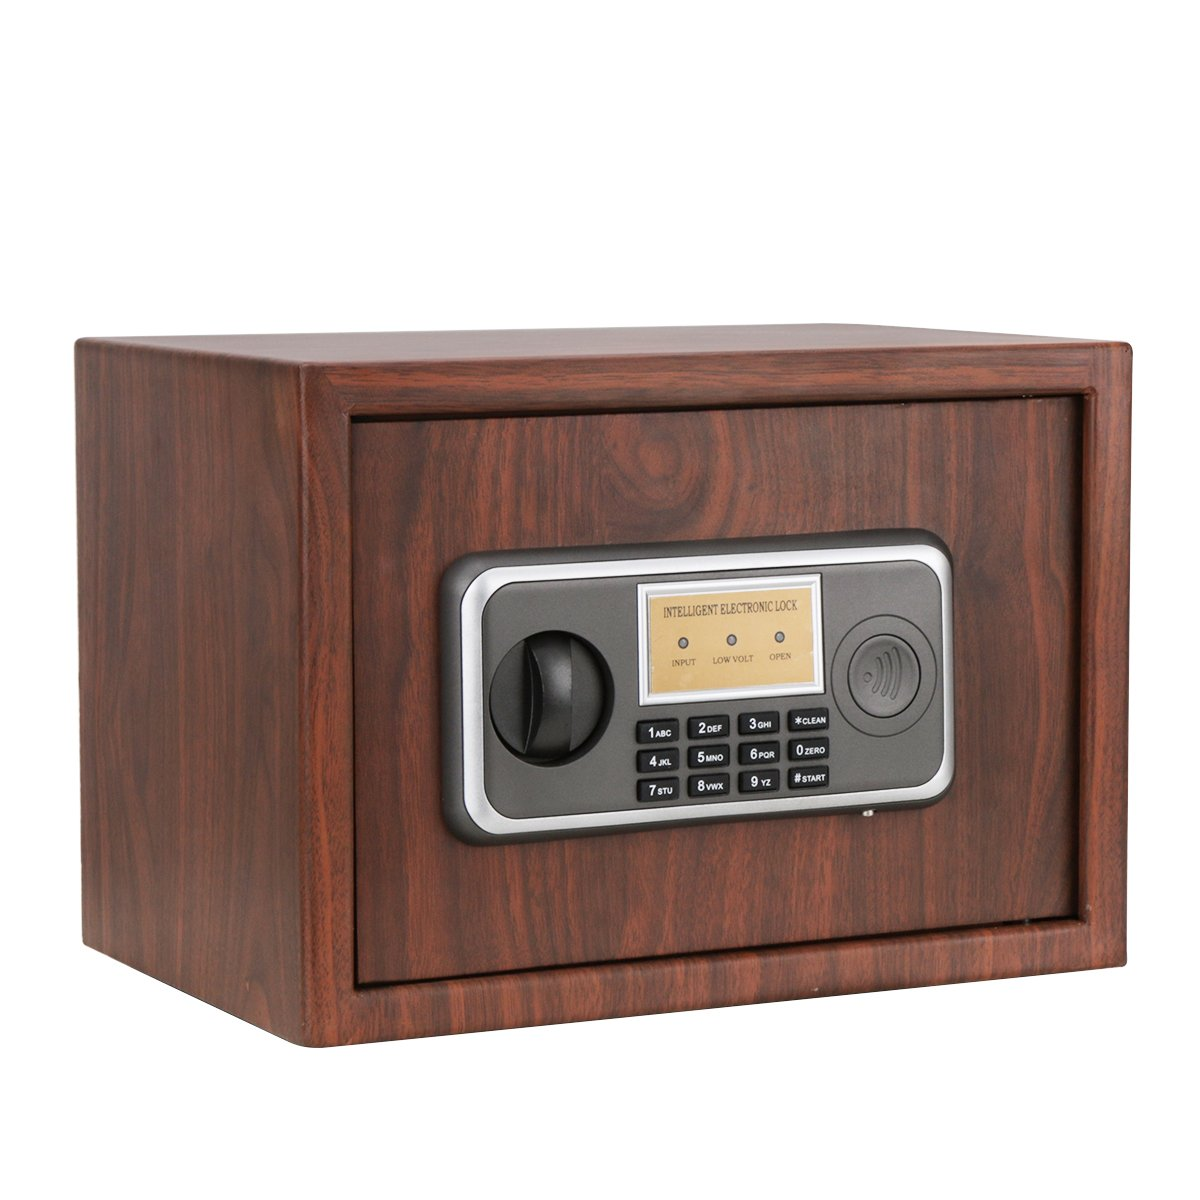 0.33 CF Digital Security Safe Box - Jssmst Lock Safe Box Wall Anchoring Design Wood Color, 0.33 Cubic Feet, WSB001 WSB 20